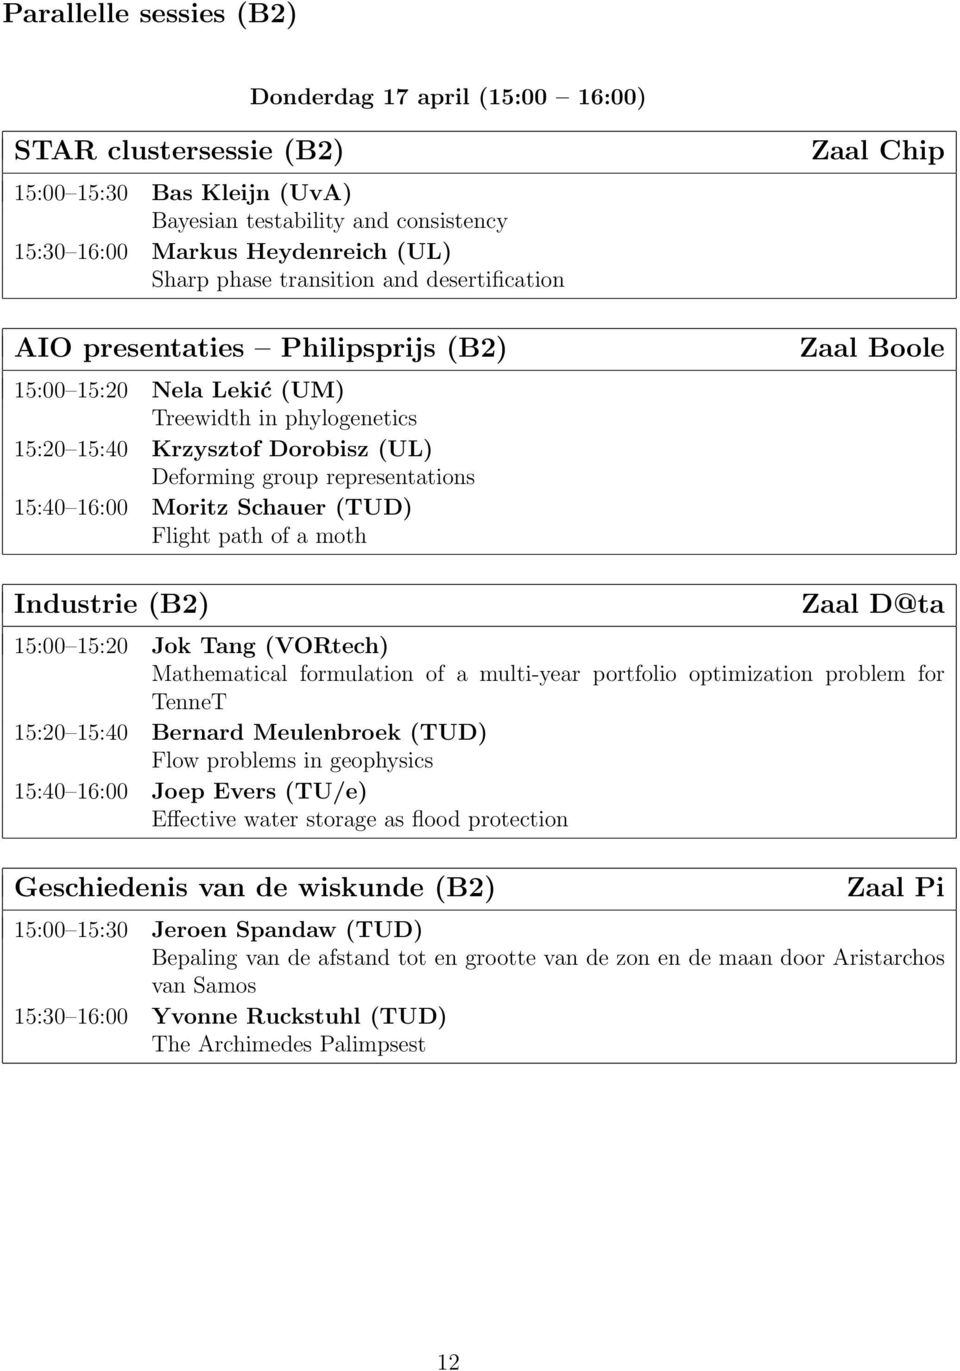 16:00 Moritz Schauer (TUD) Flight path of a moth Zaal Chip Zaal Boole Industrie (B2) Zaal D@ta 15:00 15:20 Jok Tang (VORtech) Mathematical formulation of a multi-year portfolio optimization problem